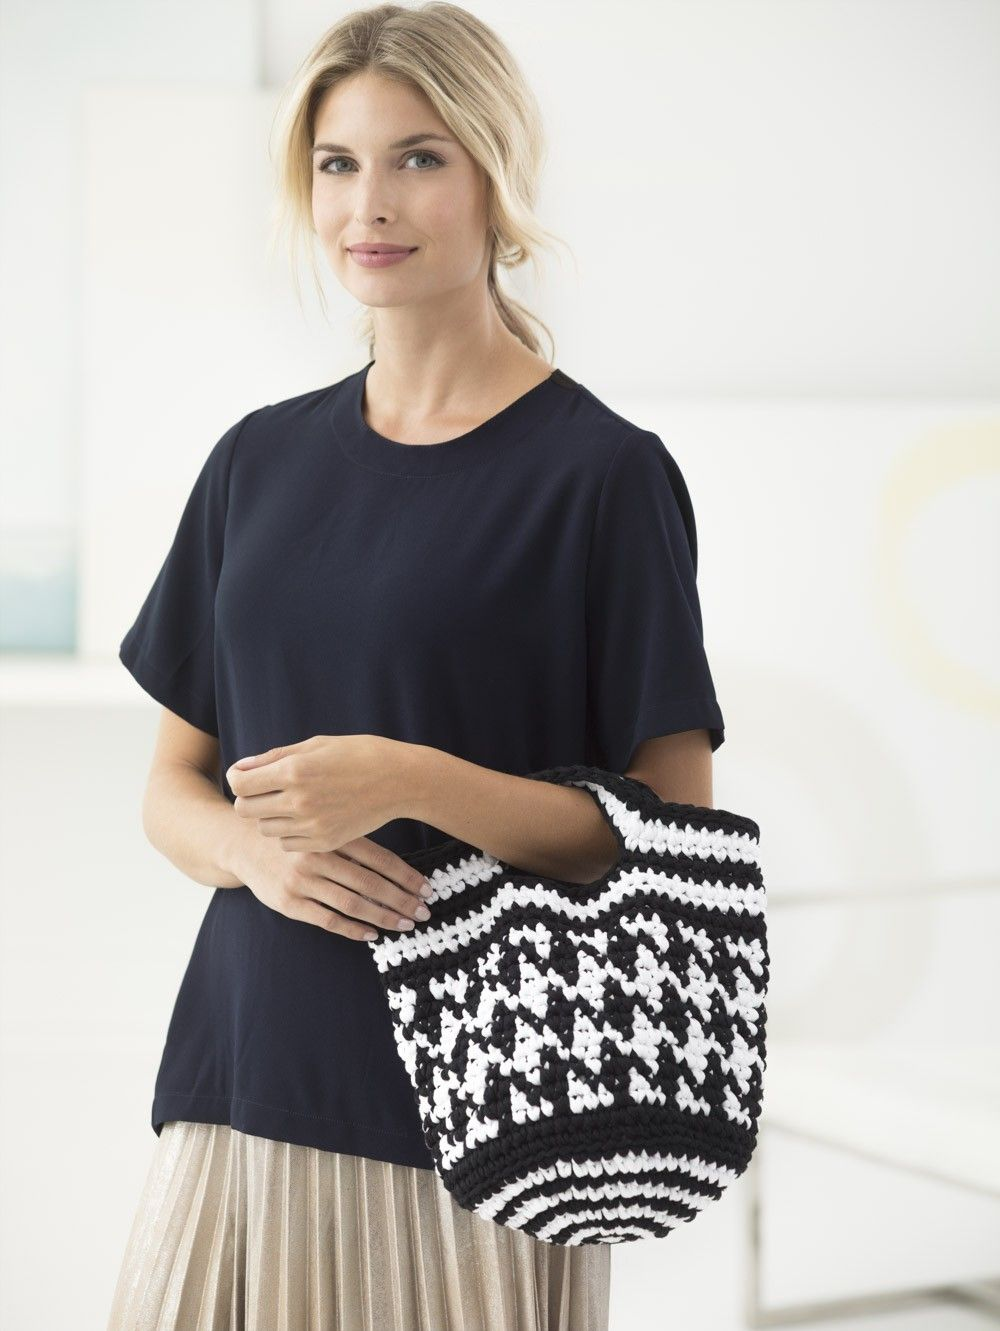 Black And White Bag (Crochet) | Crochet Patterns | Pinterest